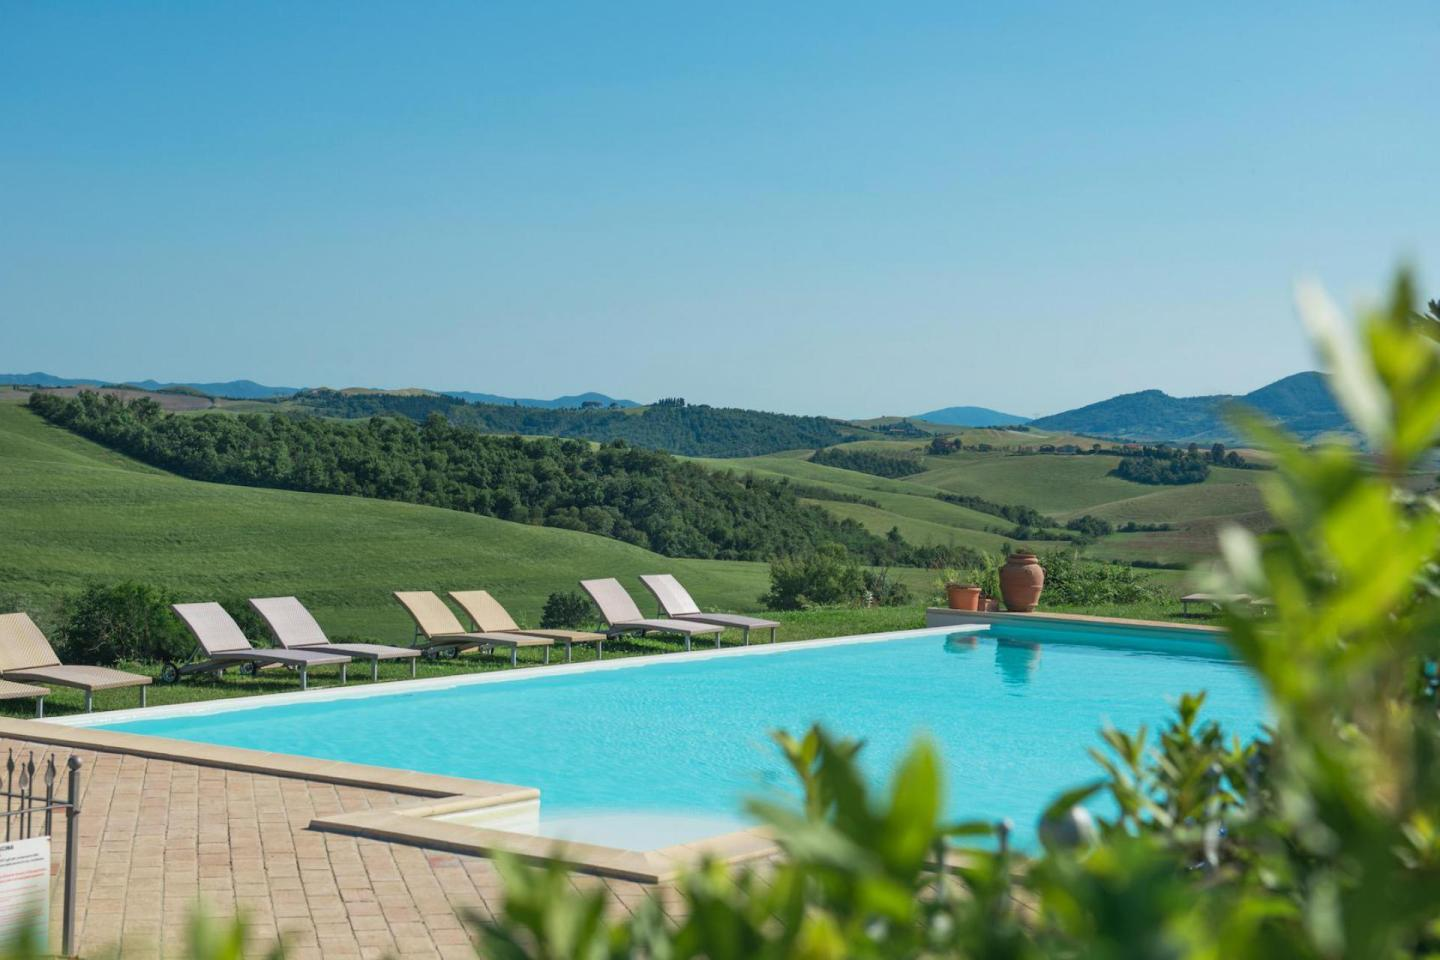 Agriturismo with a pool and view in Tuscany Italy